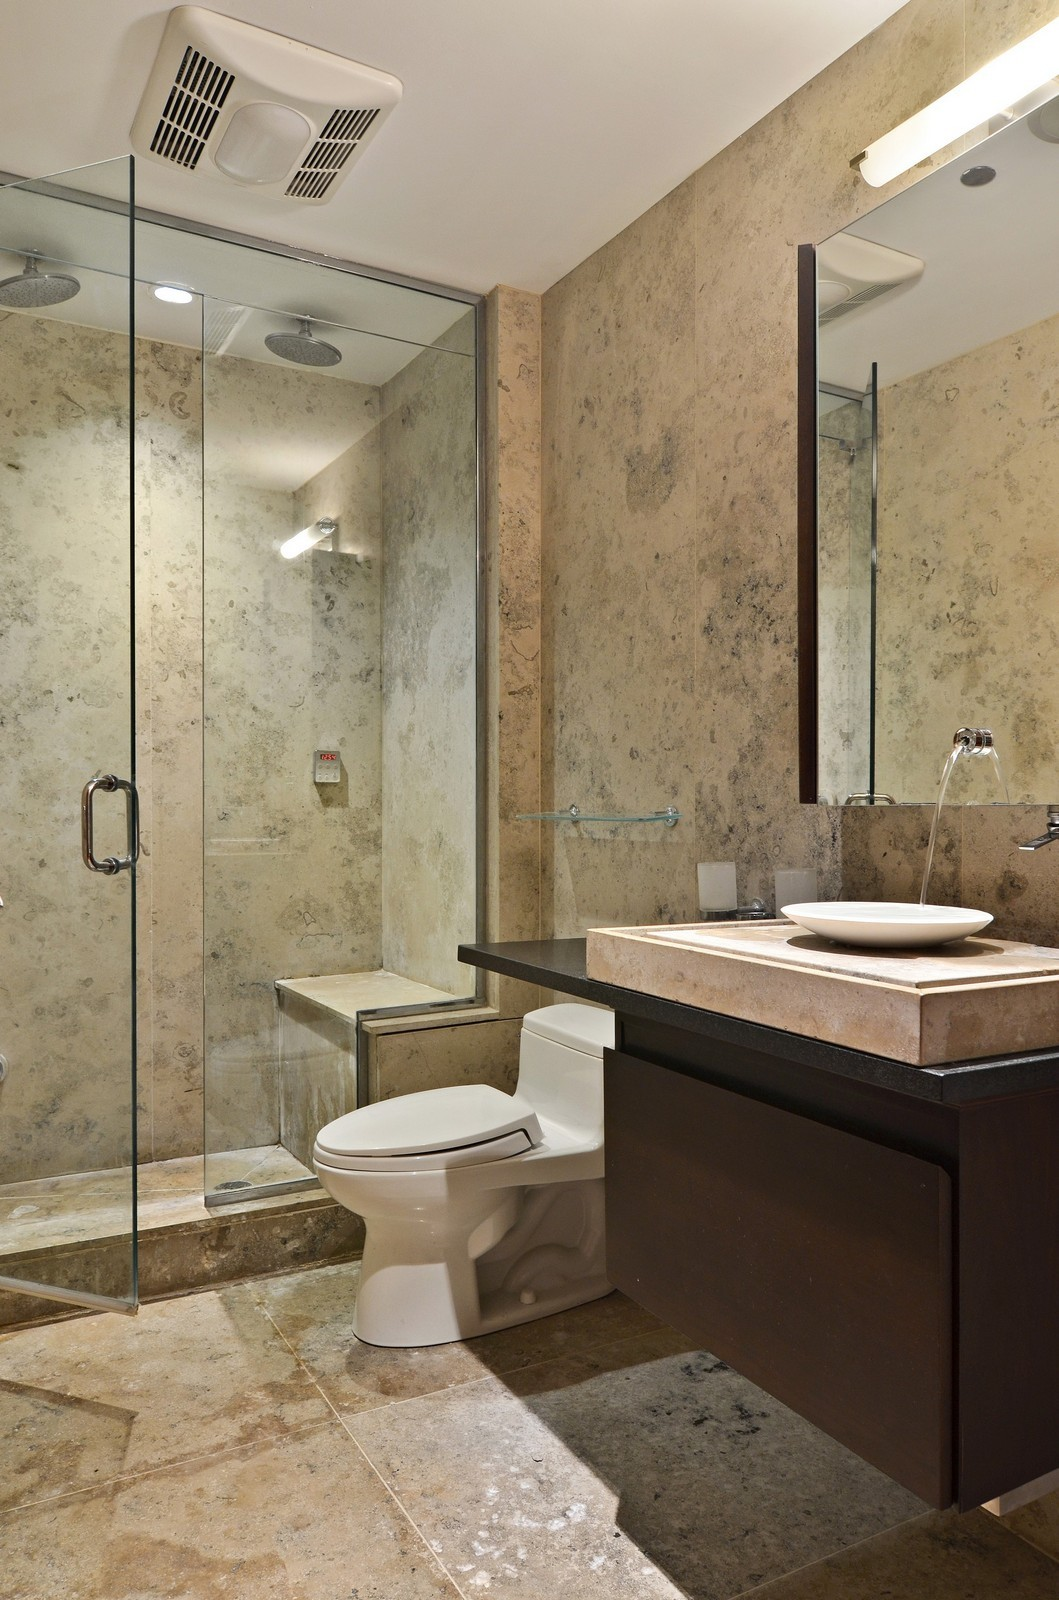 Real Estate Photography - 840 N Lake Shore Dr, Unit 201, Chicago, IL, 60611 - 2nd Bathroom